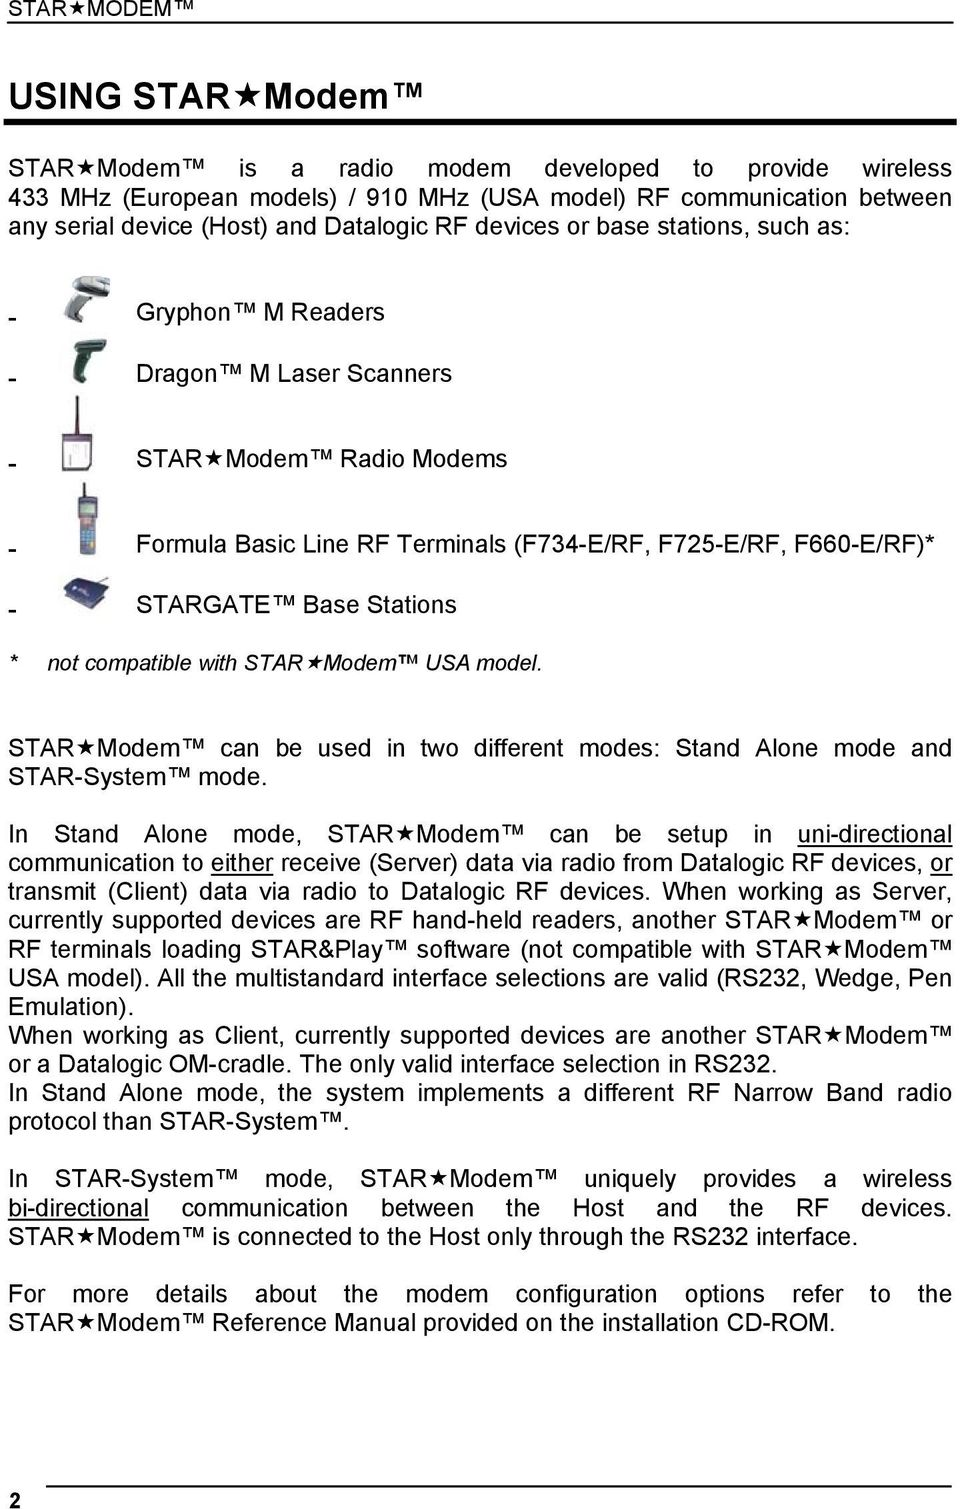 Stations * not compatible with STAR Modem USA model. STAR Modem can be used in two different modes: Stand Alone mode and STAR-System mode.